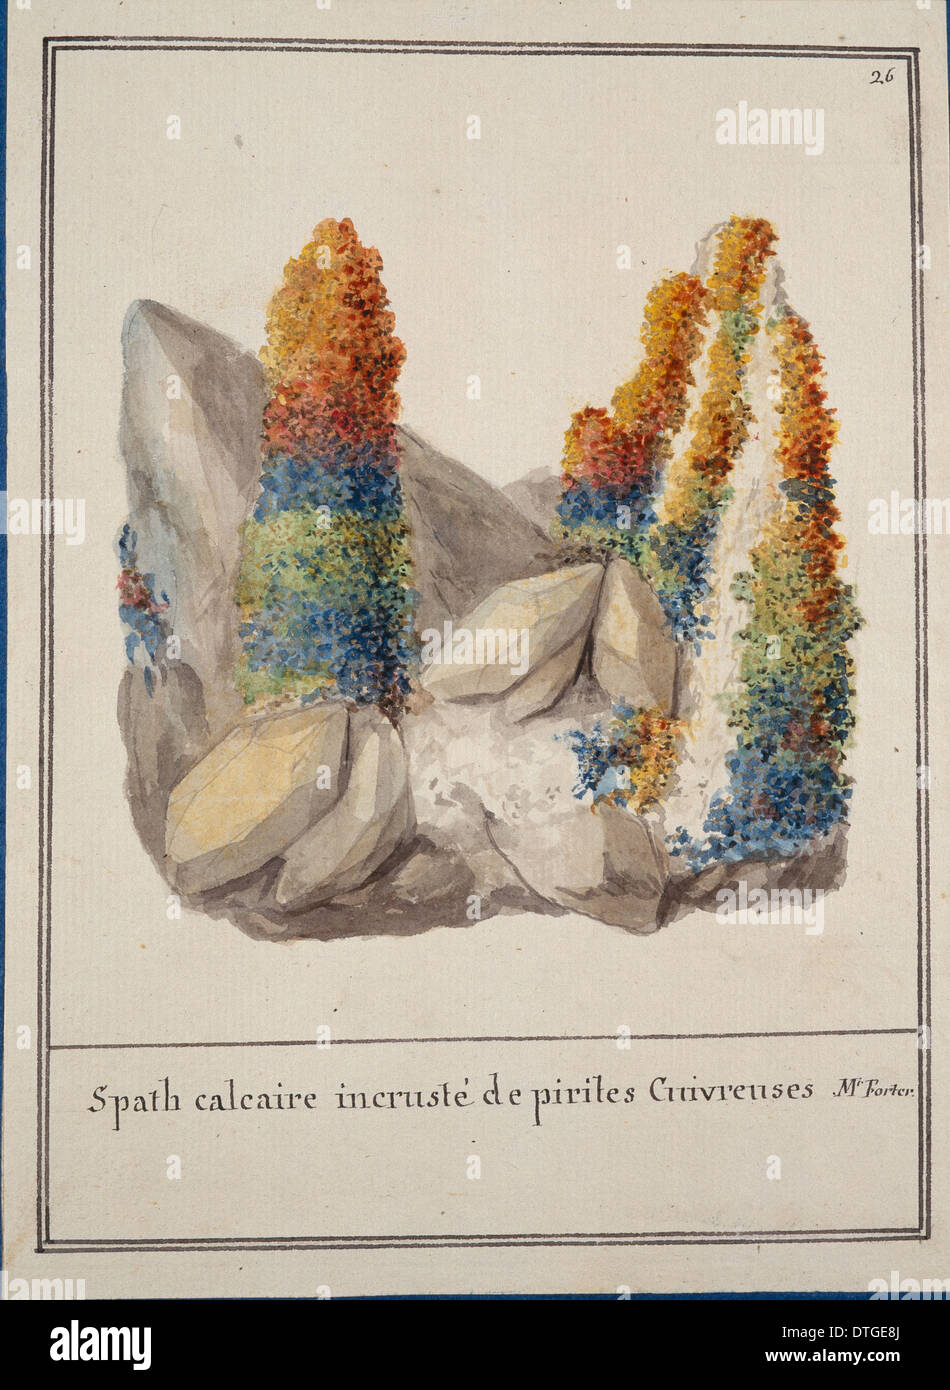 Plate 26 from Mineralogie Volume 1 (1790) by Swebach Desfontaines - Stock Image